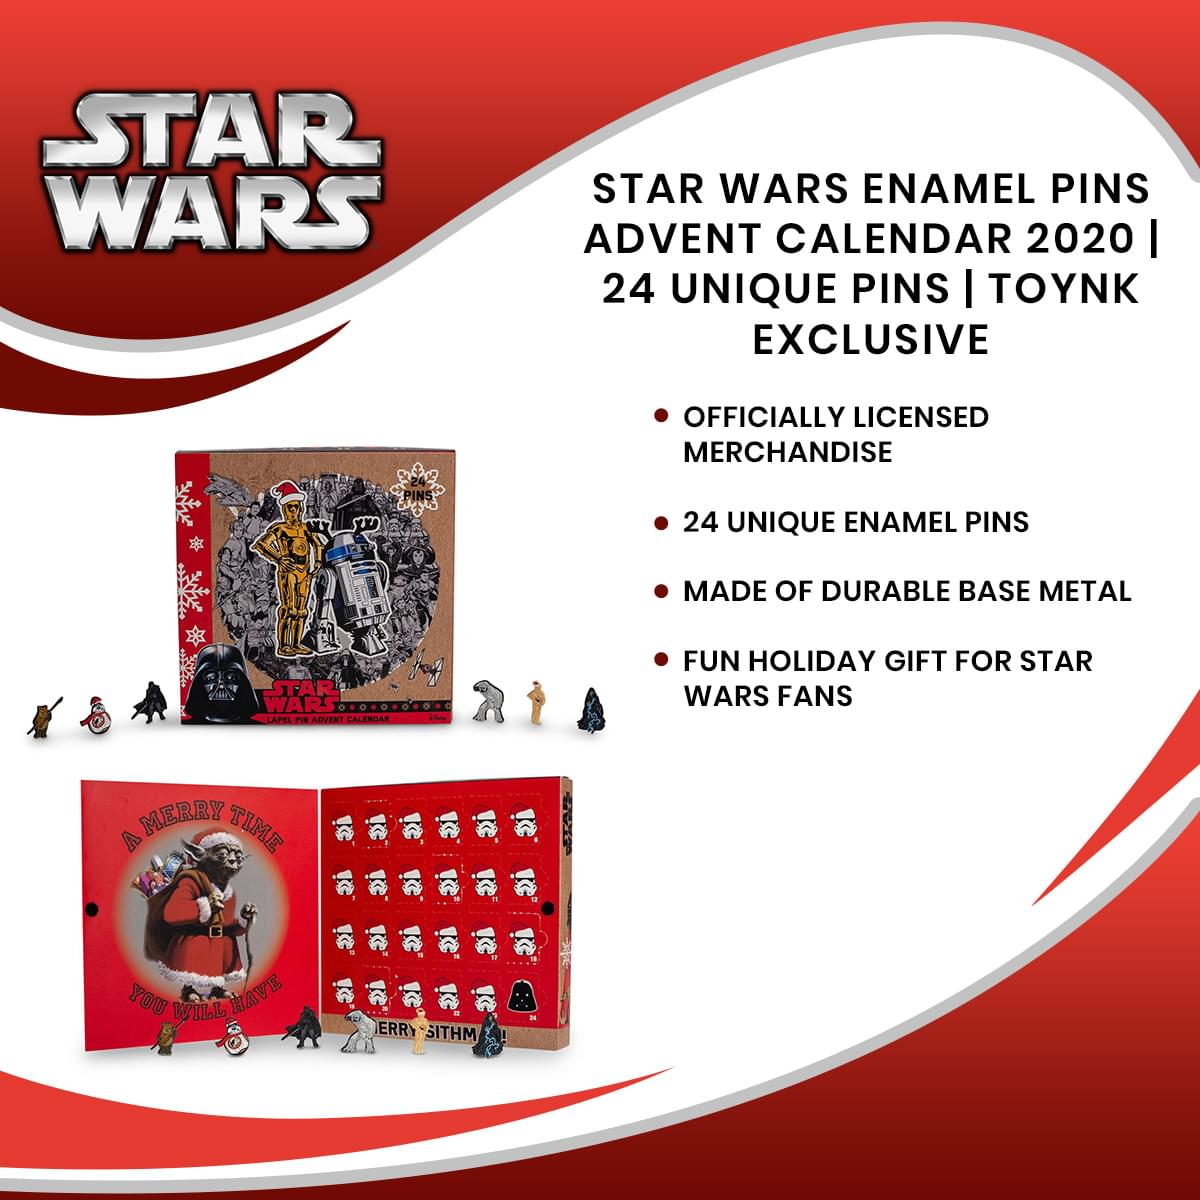 Star Wars Exclusive 2020 Advent Calendar | 21 Enamel Pins, 3 Buttons/Pins